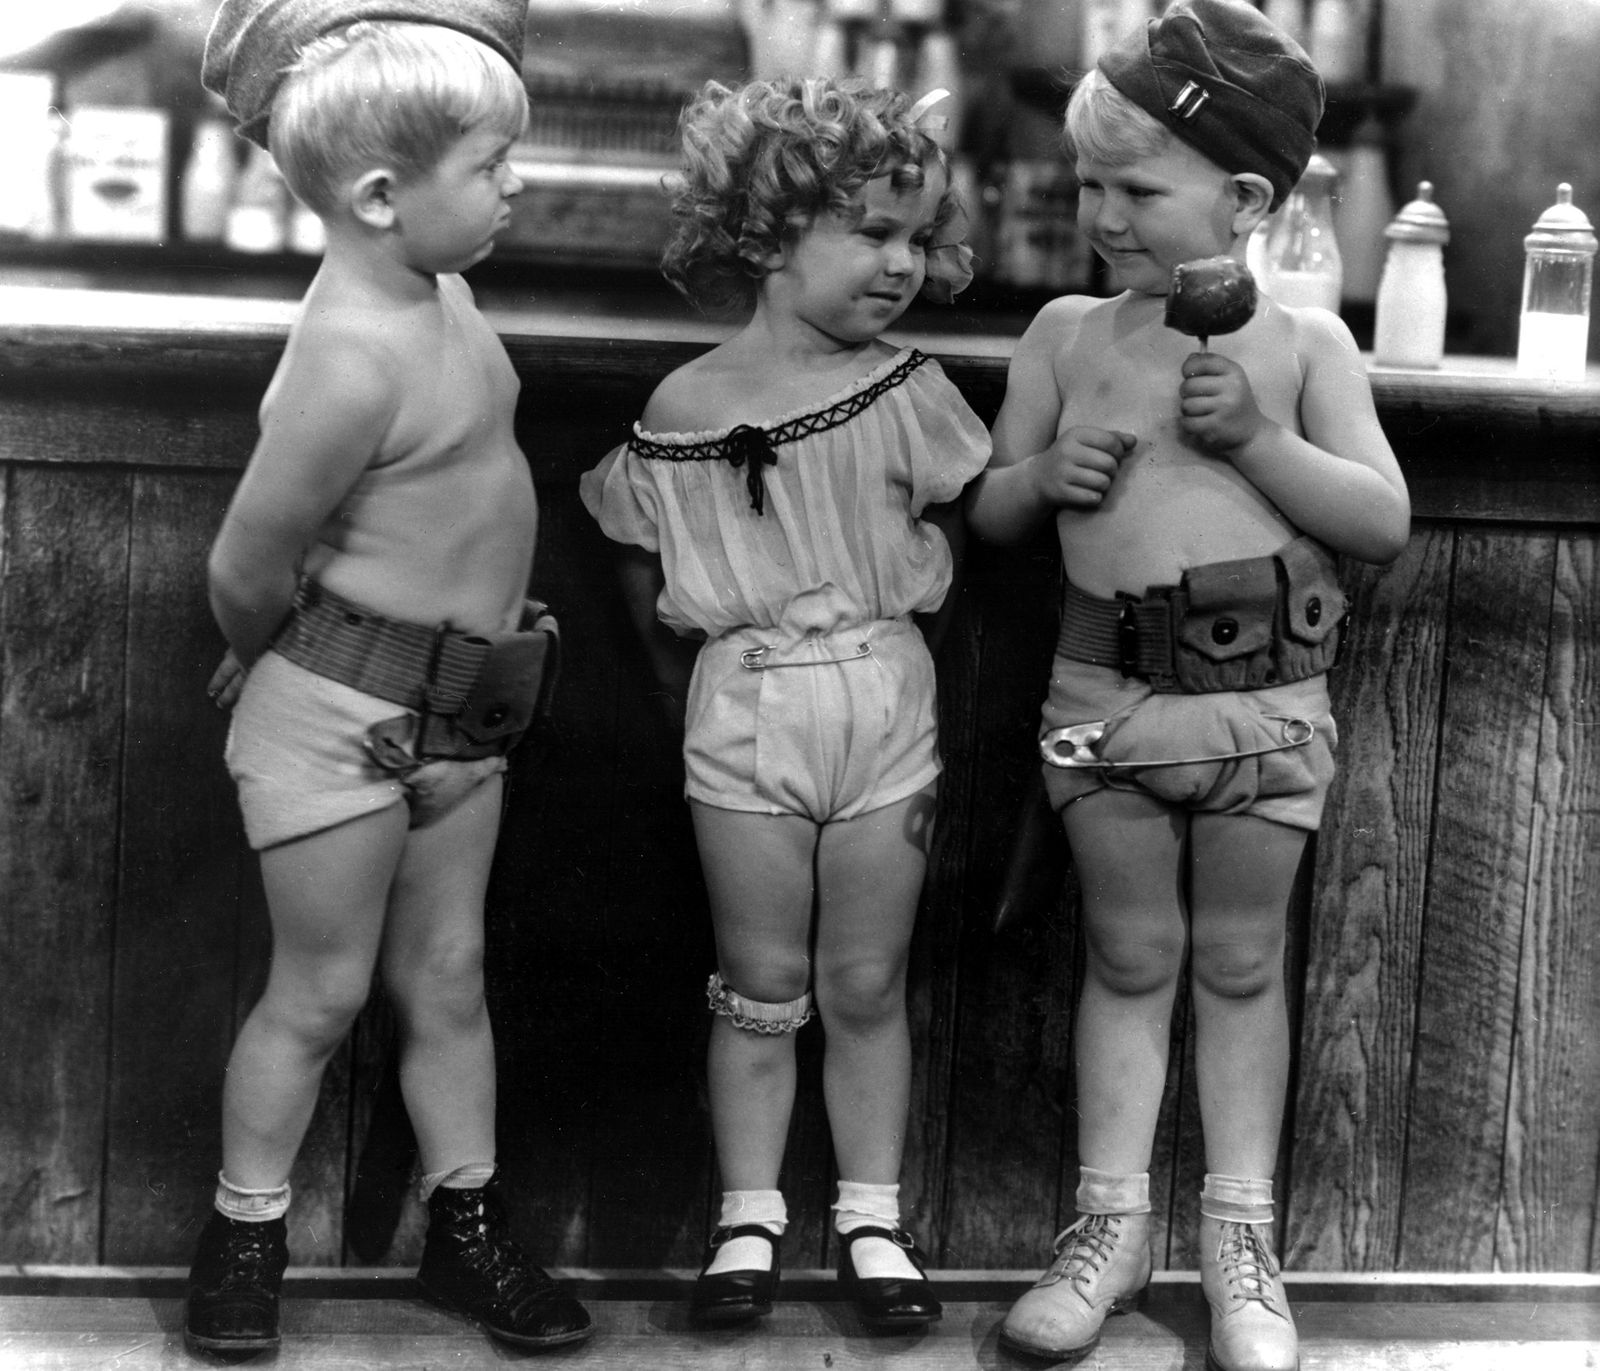 WAR BABIES, Georgie Billings, Shirley Temple, Georgie Smith, 1932